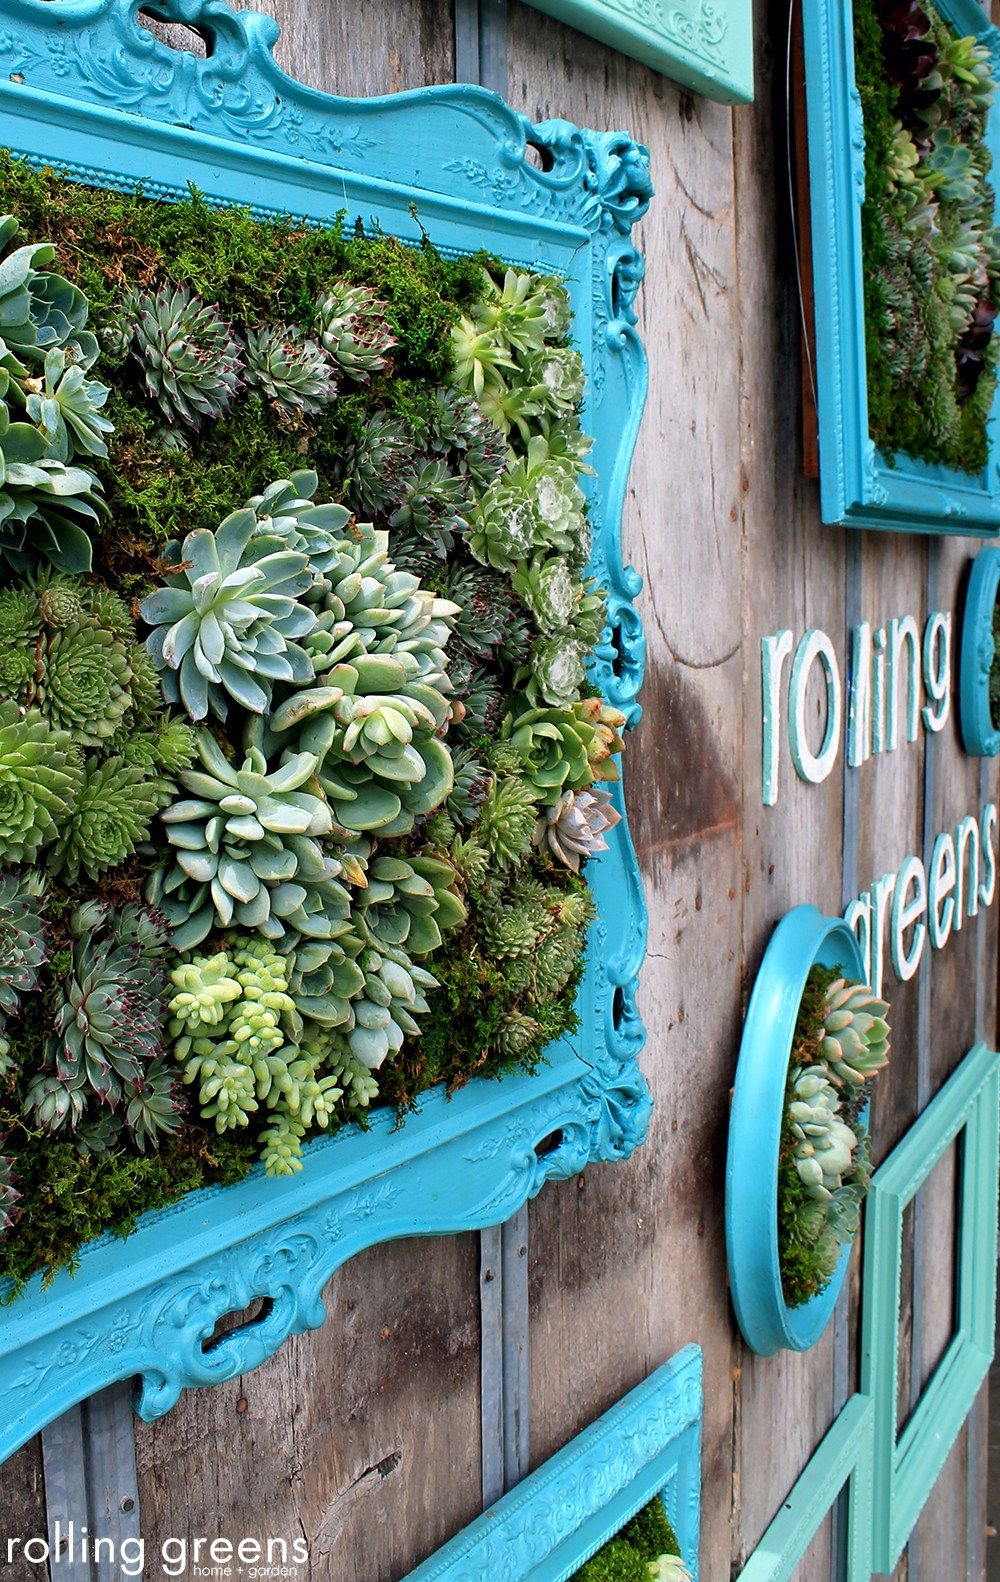 Jolly Vertical Garden Ideas That Will Change Way You Think About Gardening Vertical Garden Ideas That Will Change Way You Think About Faux Succulent Hanging Garden Hanging Succulent Garden Ball garden Succulent Hanging Garden